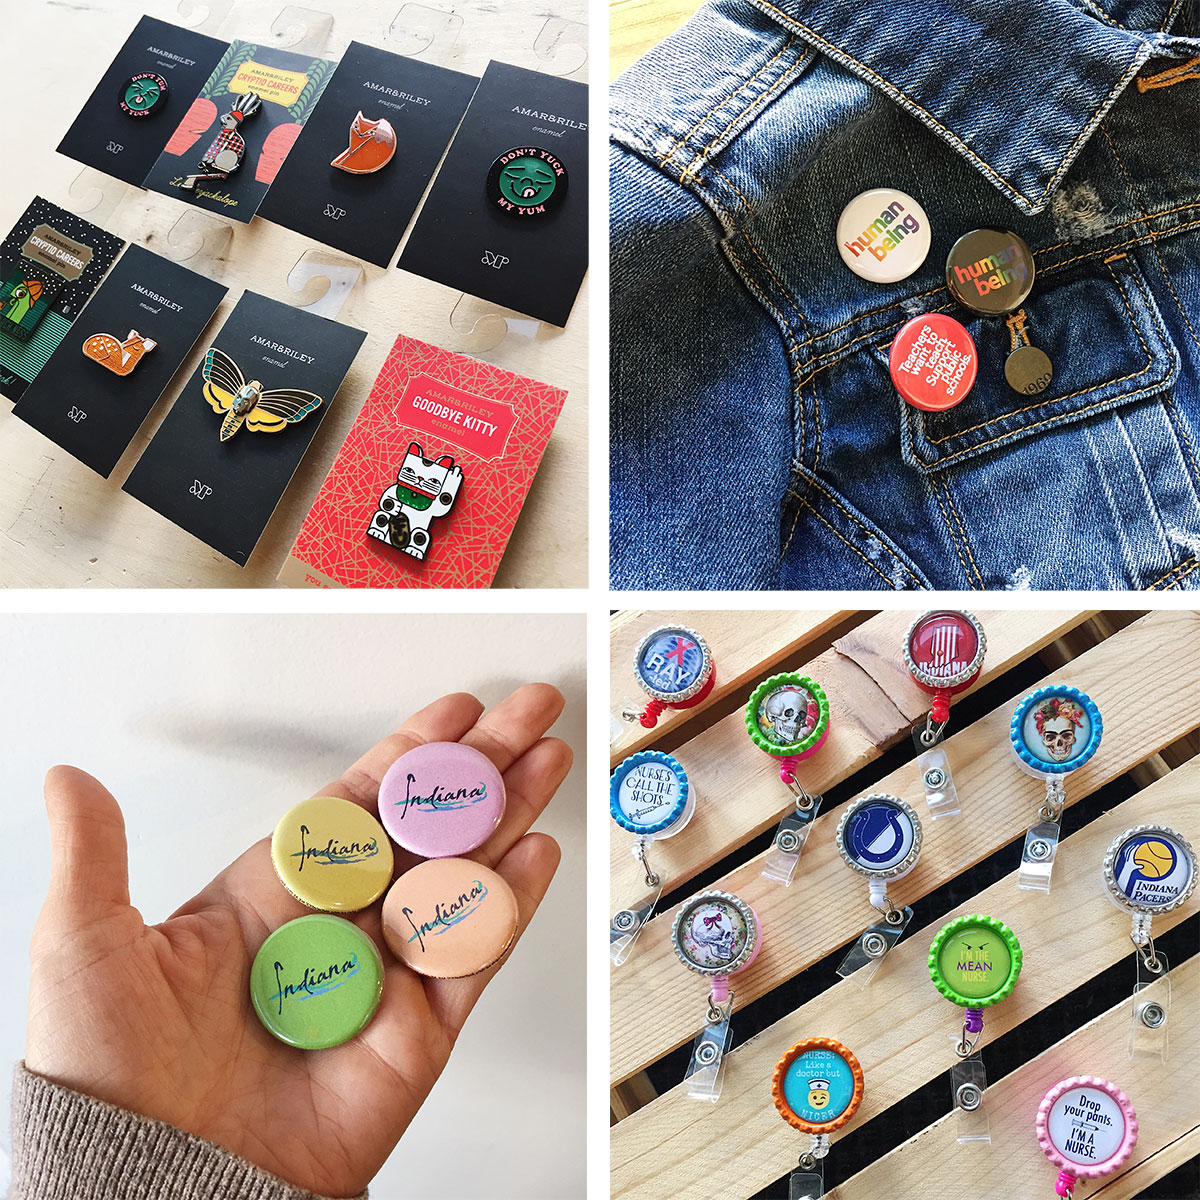 ICYMI October 26 Homespun Indianapolis buttons, pins, and badge clips